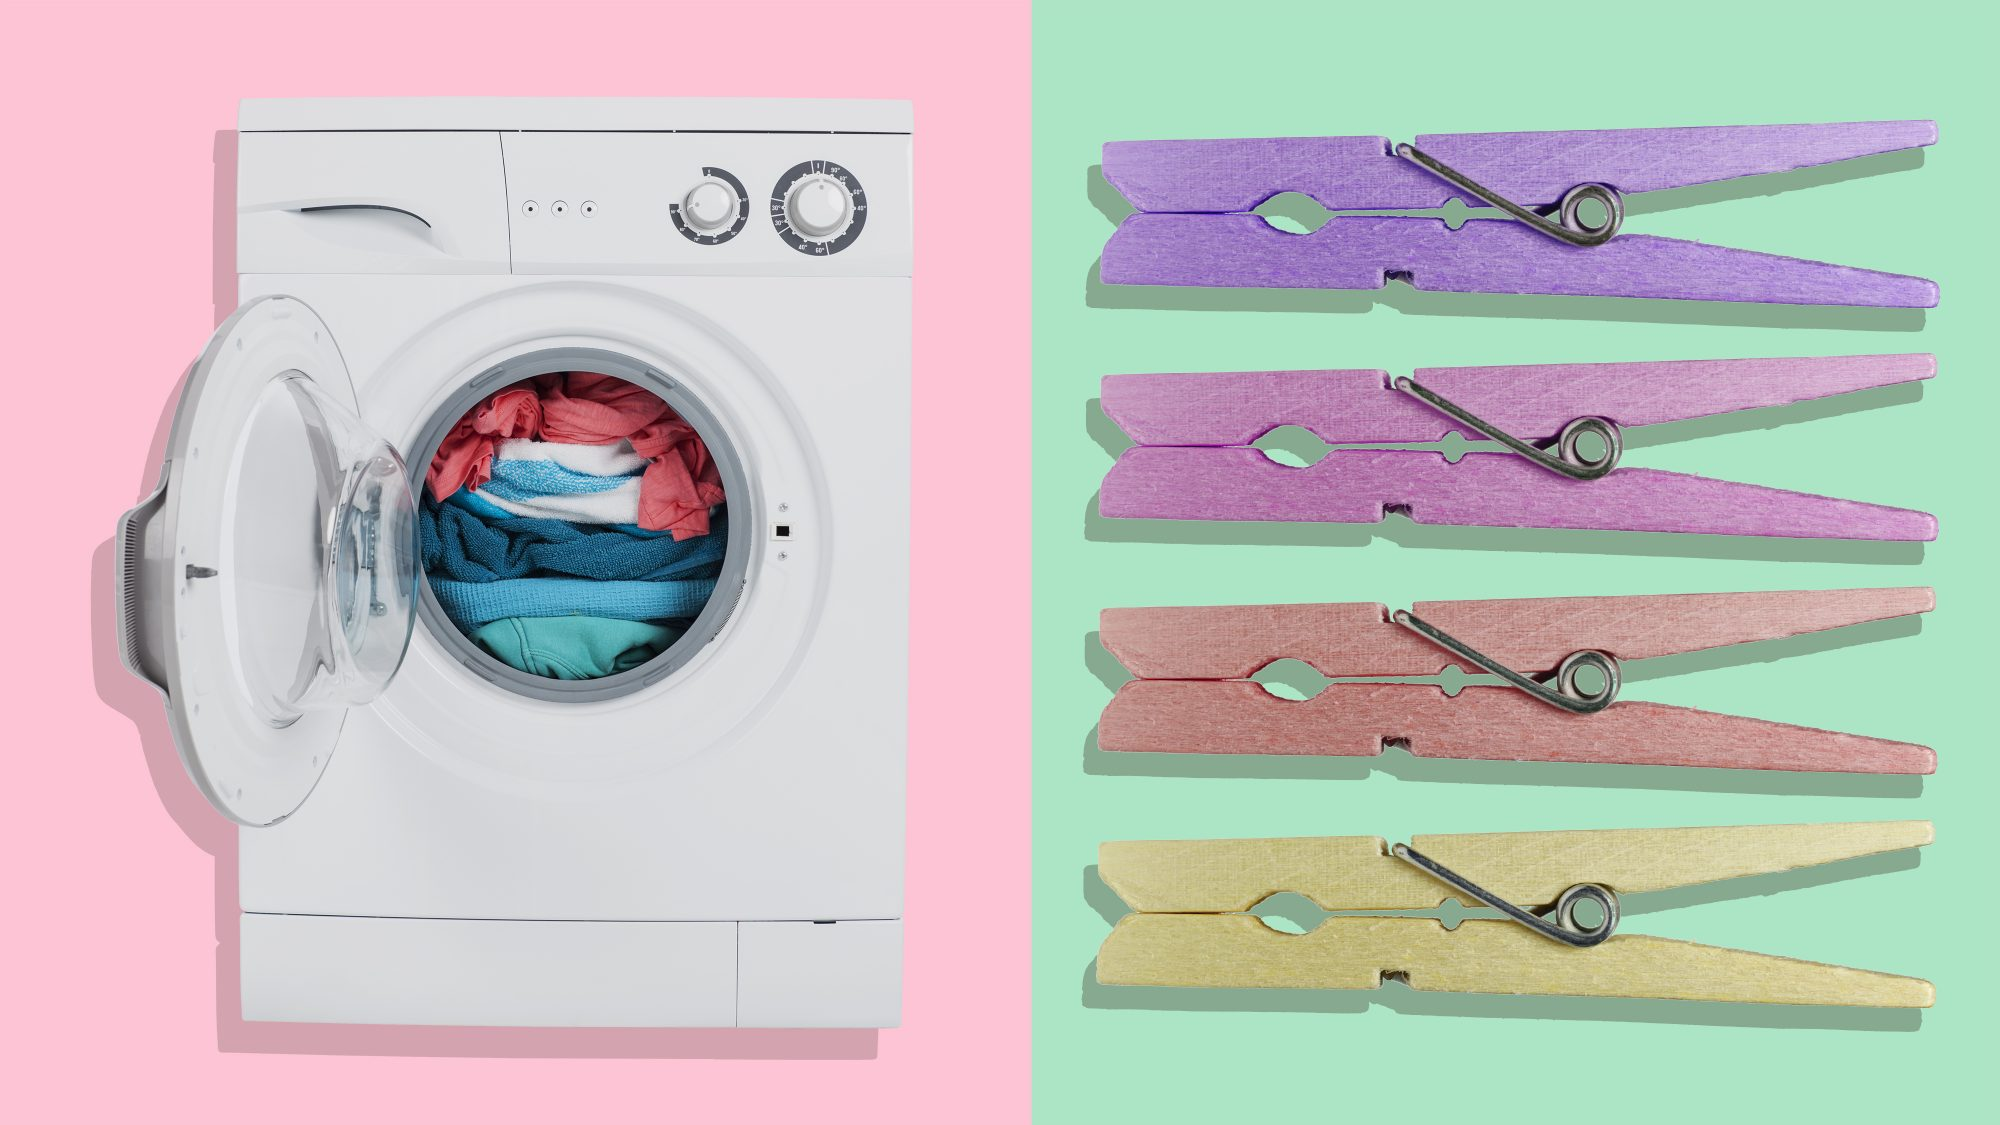 Eco-Friendly Laundry Tips, washing machine and drying rack